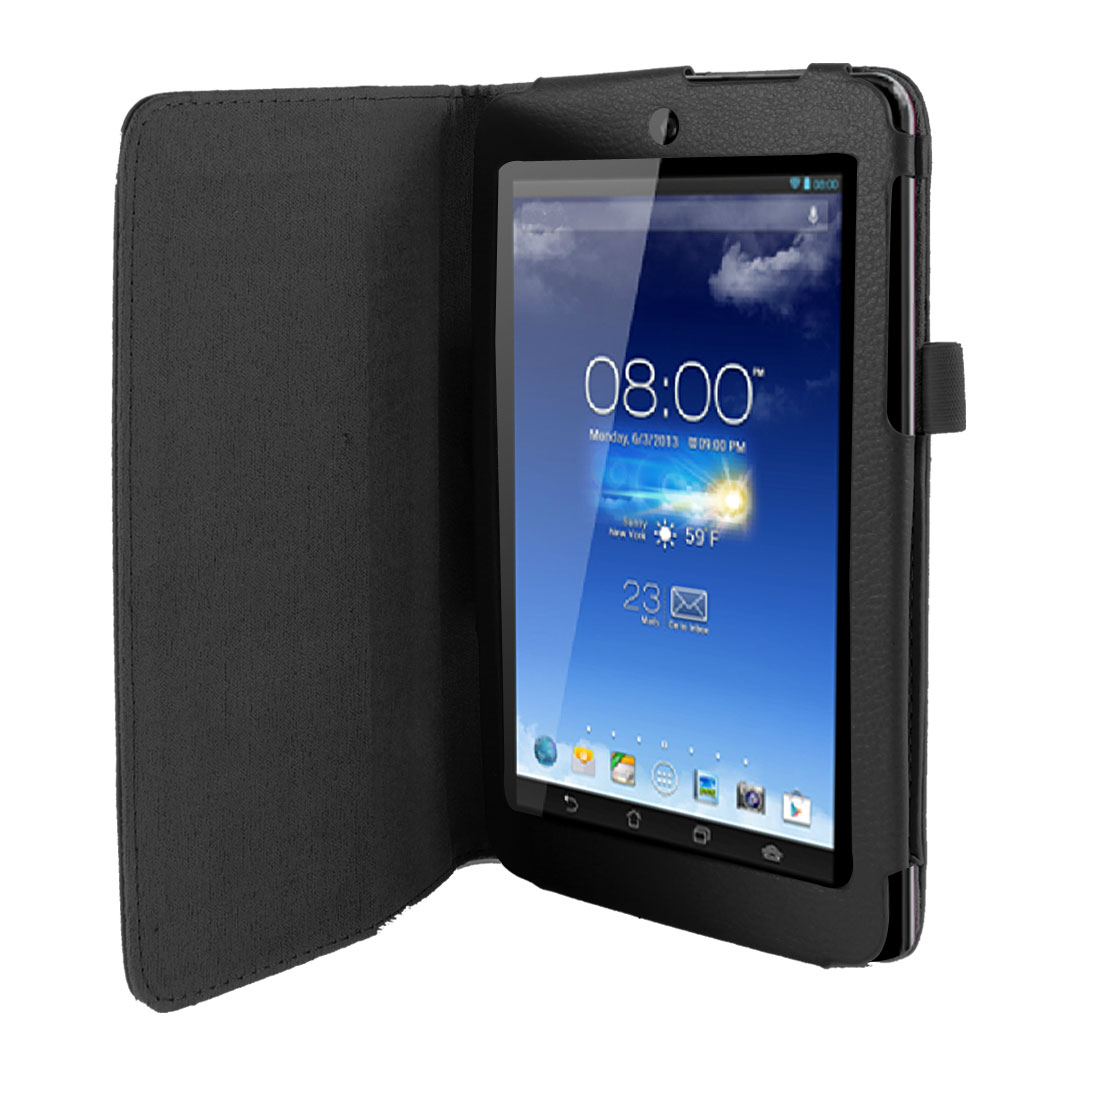 Stand Magnetic Flip Protective Case Cover Black for ASUS MeMO Pad HD 7 ME173X